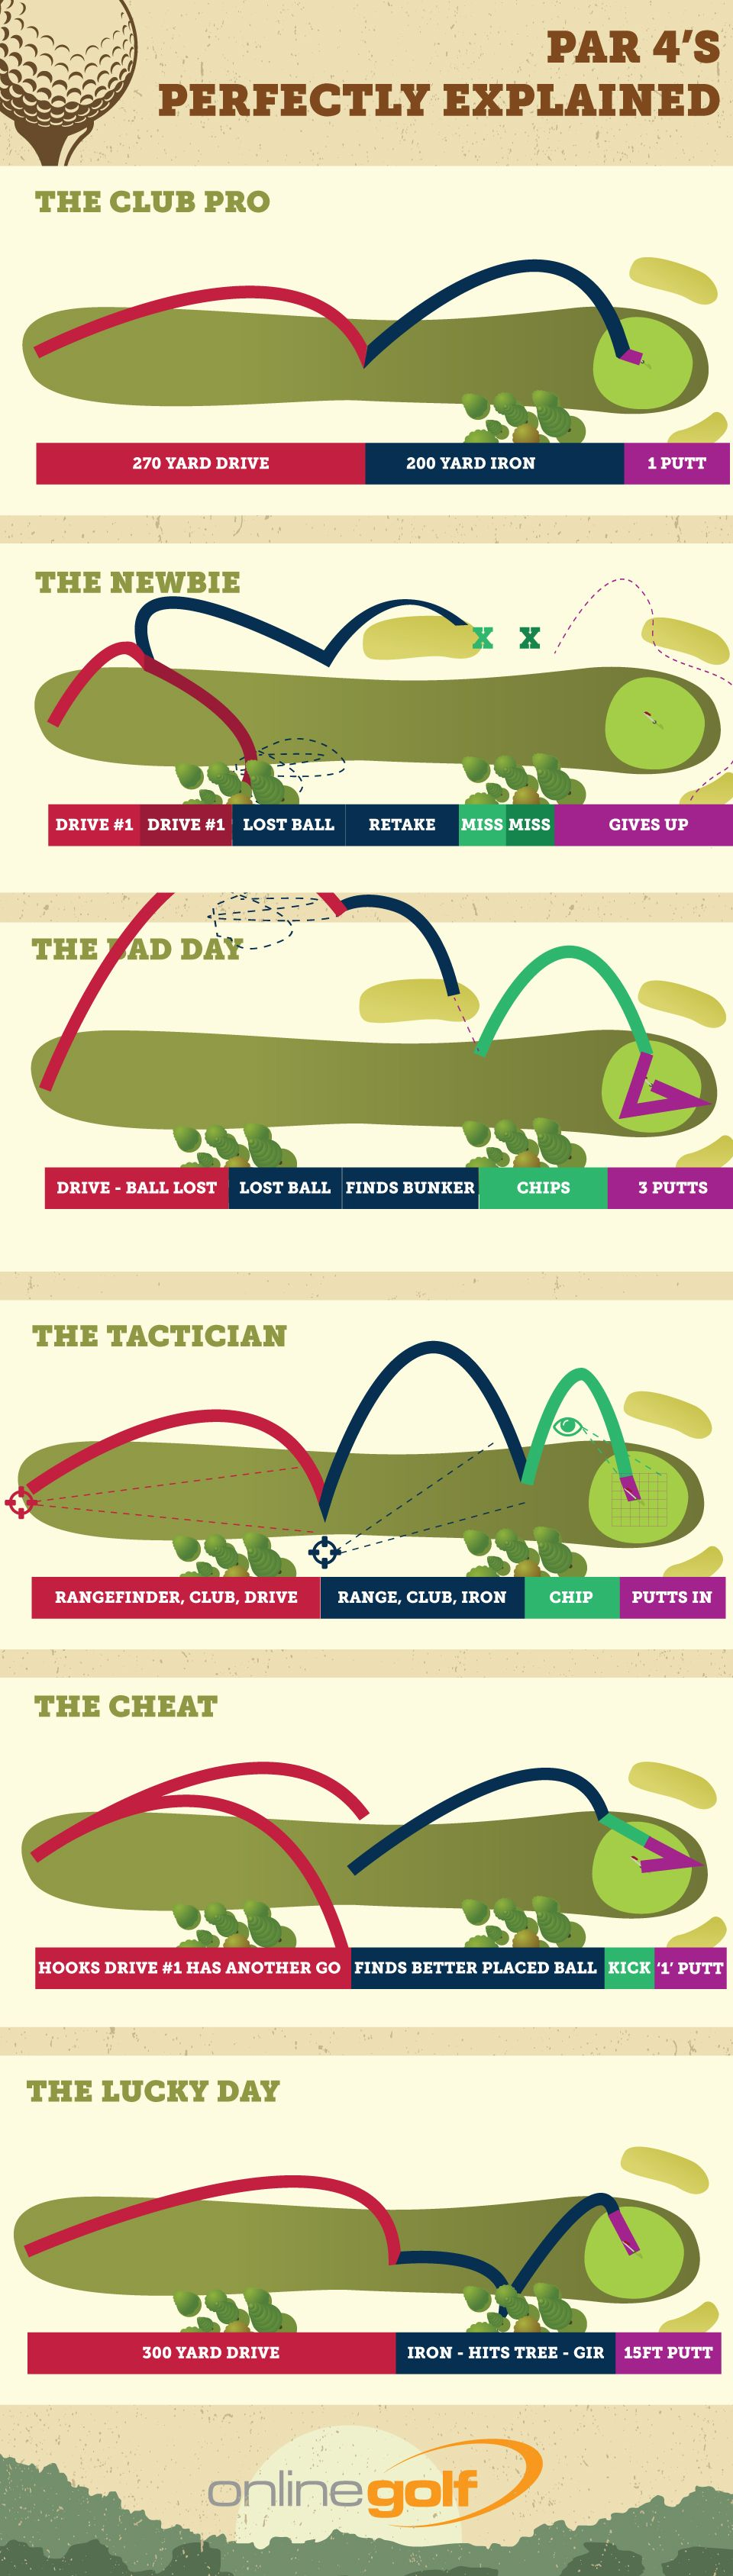 What Type of Golfer Are You? #infographic